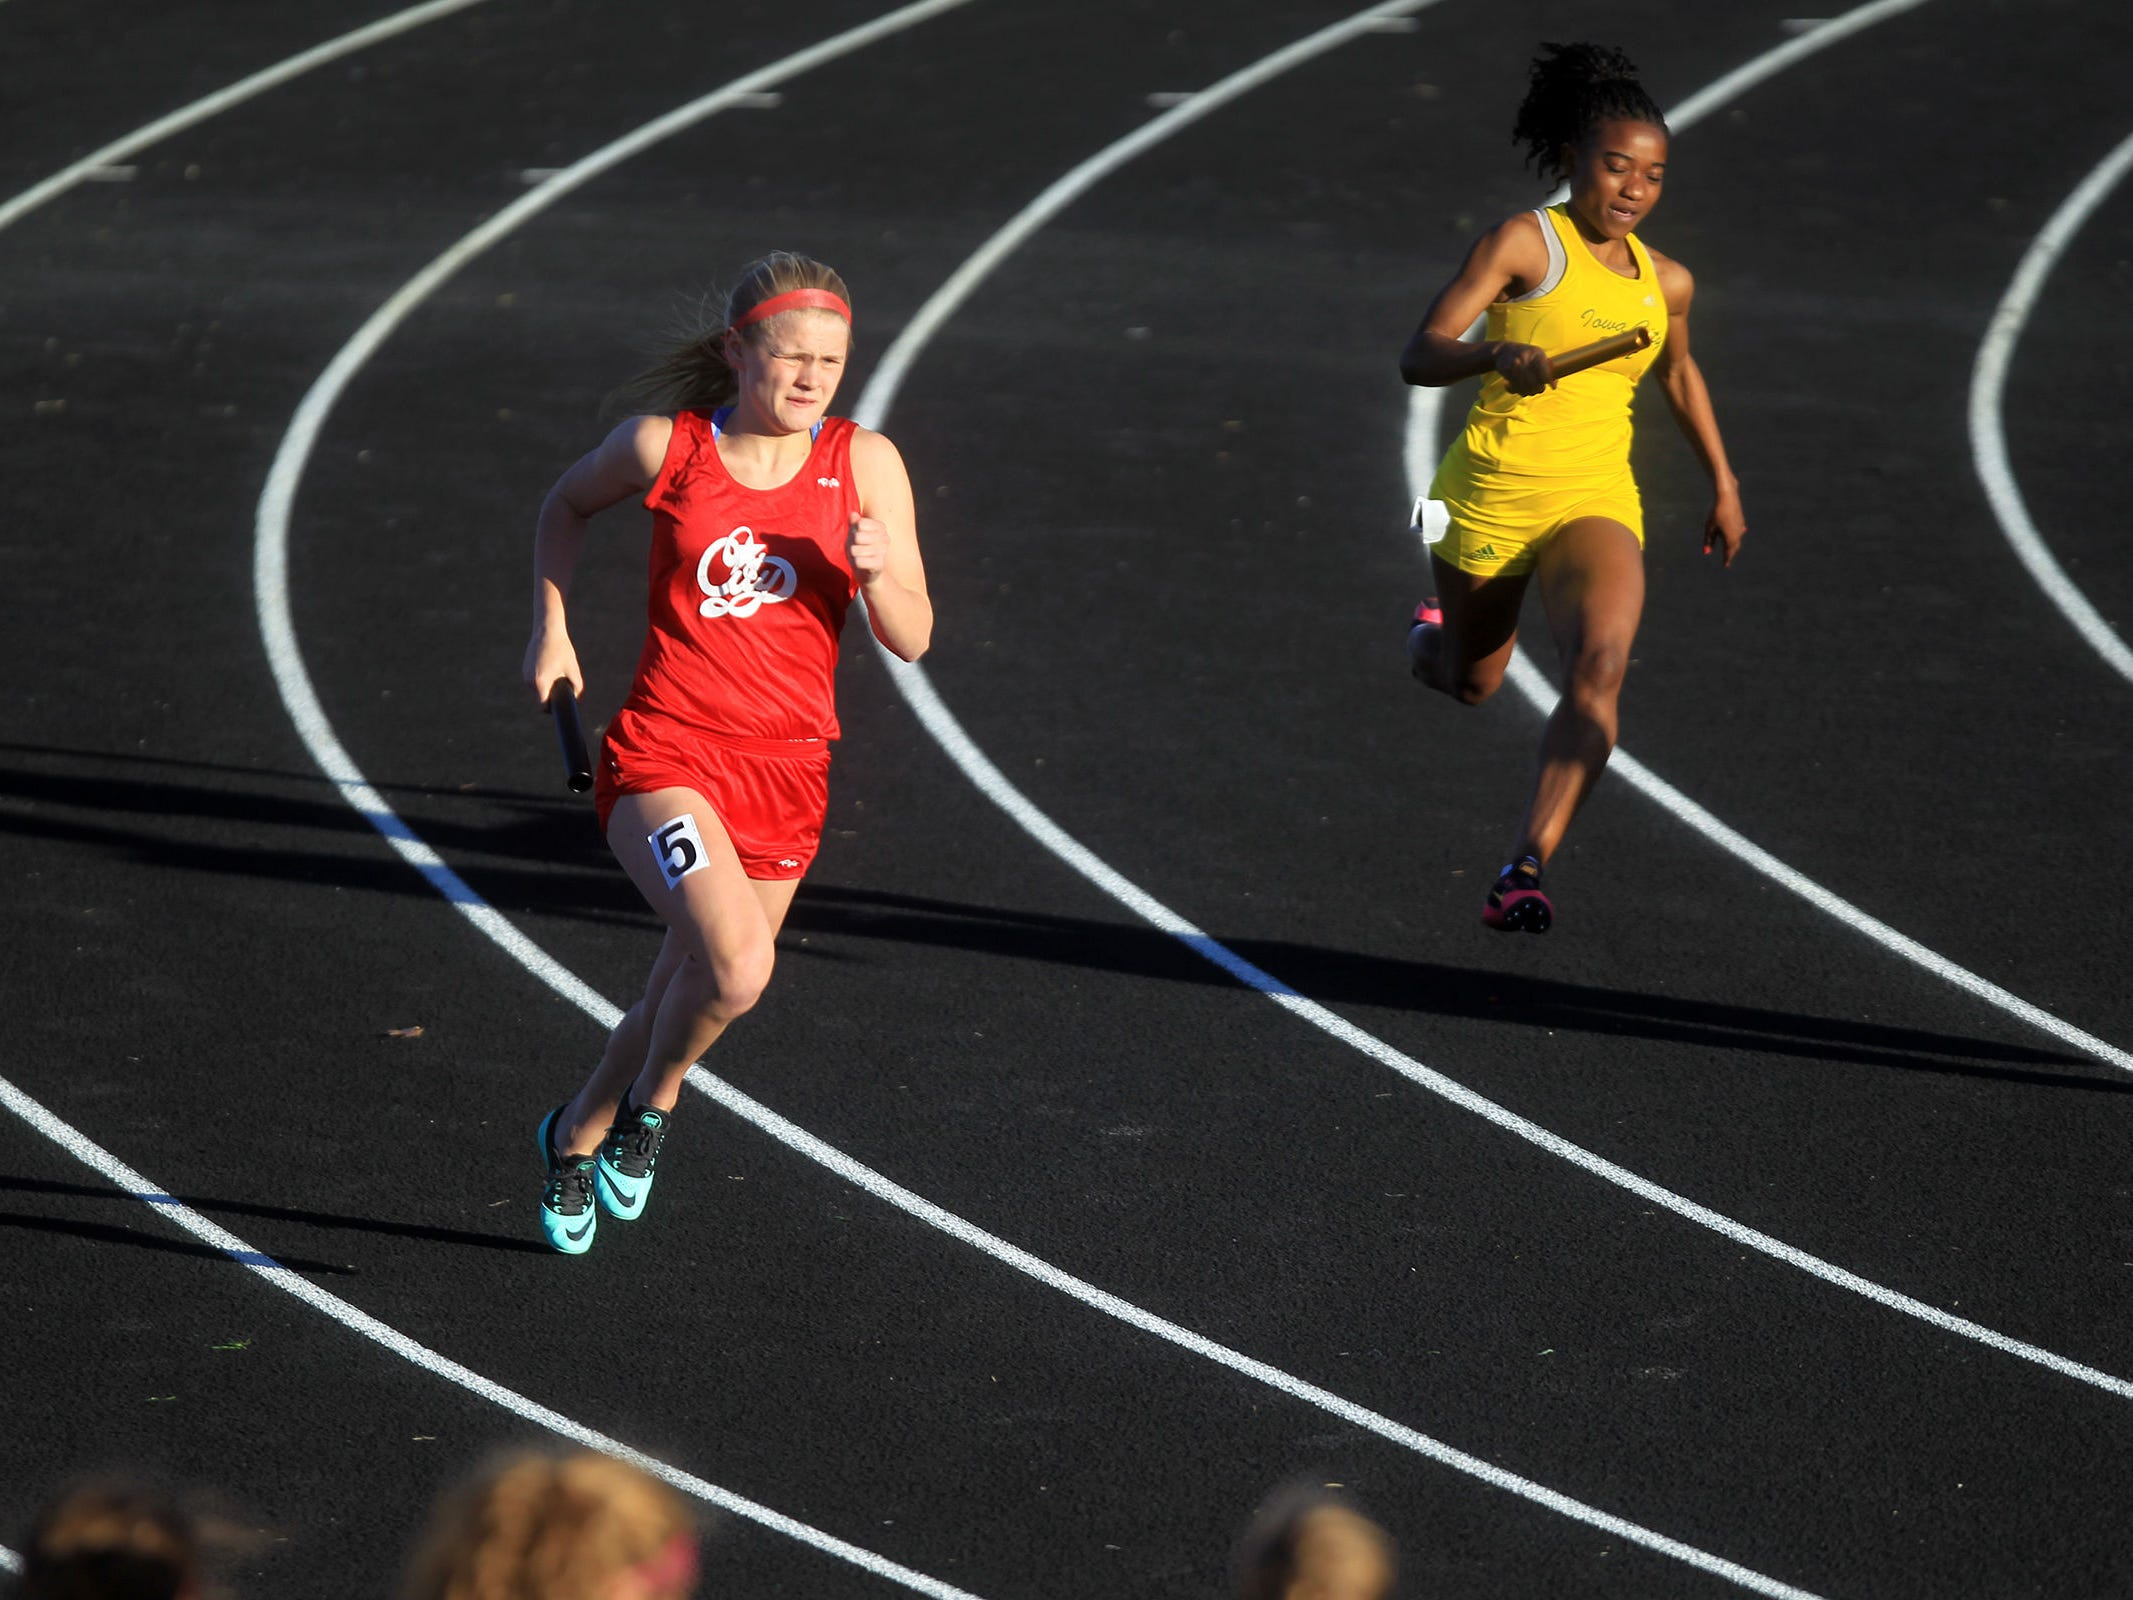 City High's Sydney DePrenger and West High's Katherine Mukumbilwa compete in the 4x200 meter relay at the Women of Troy Relays at West High on Tuesday, March 31, 2015. David Scrivner / Iowa City Press-Citizen